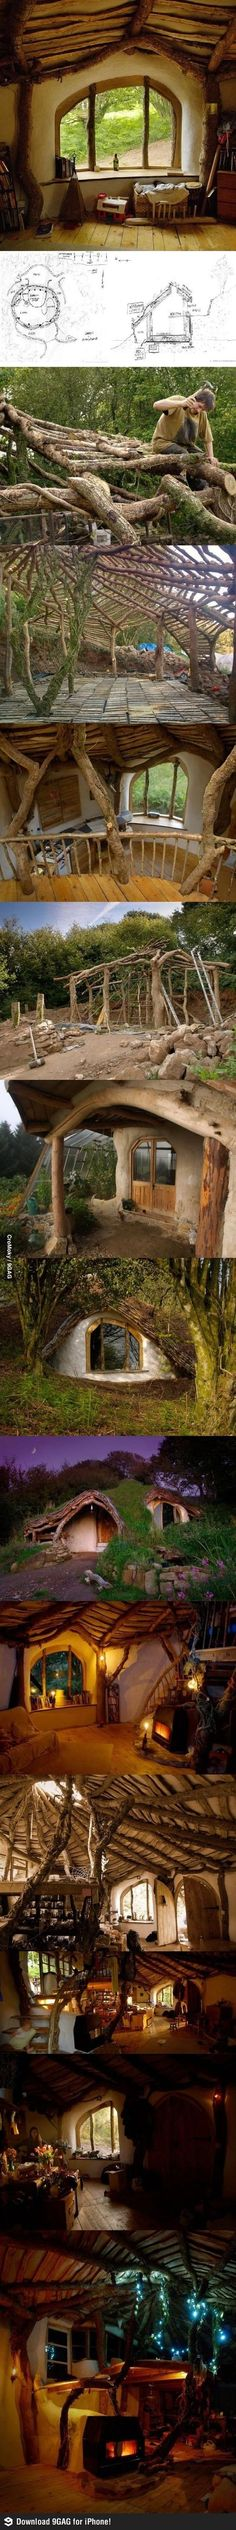 How to build a Hobbit house...someone build this for me, please!!